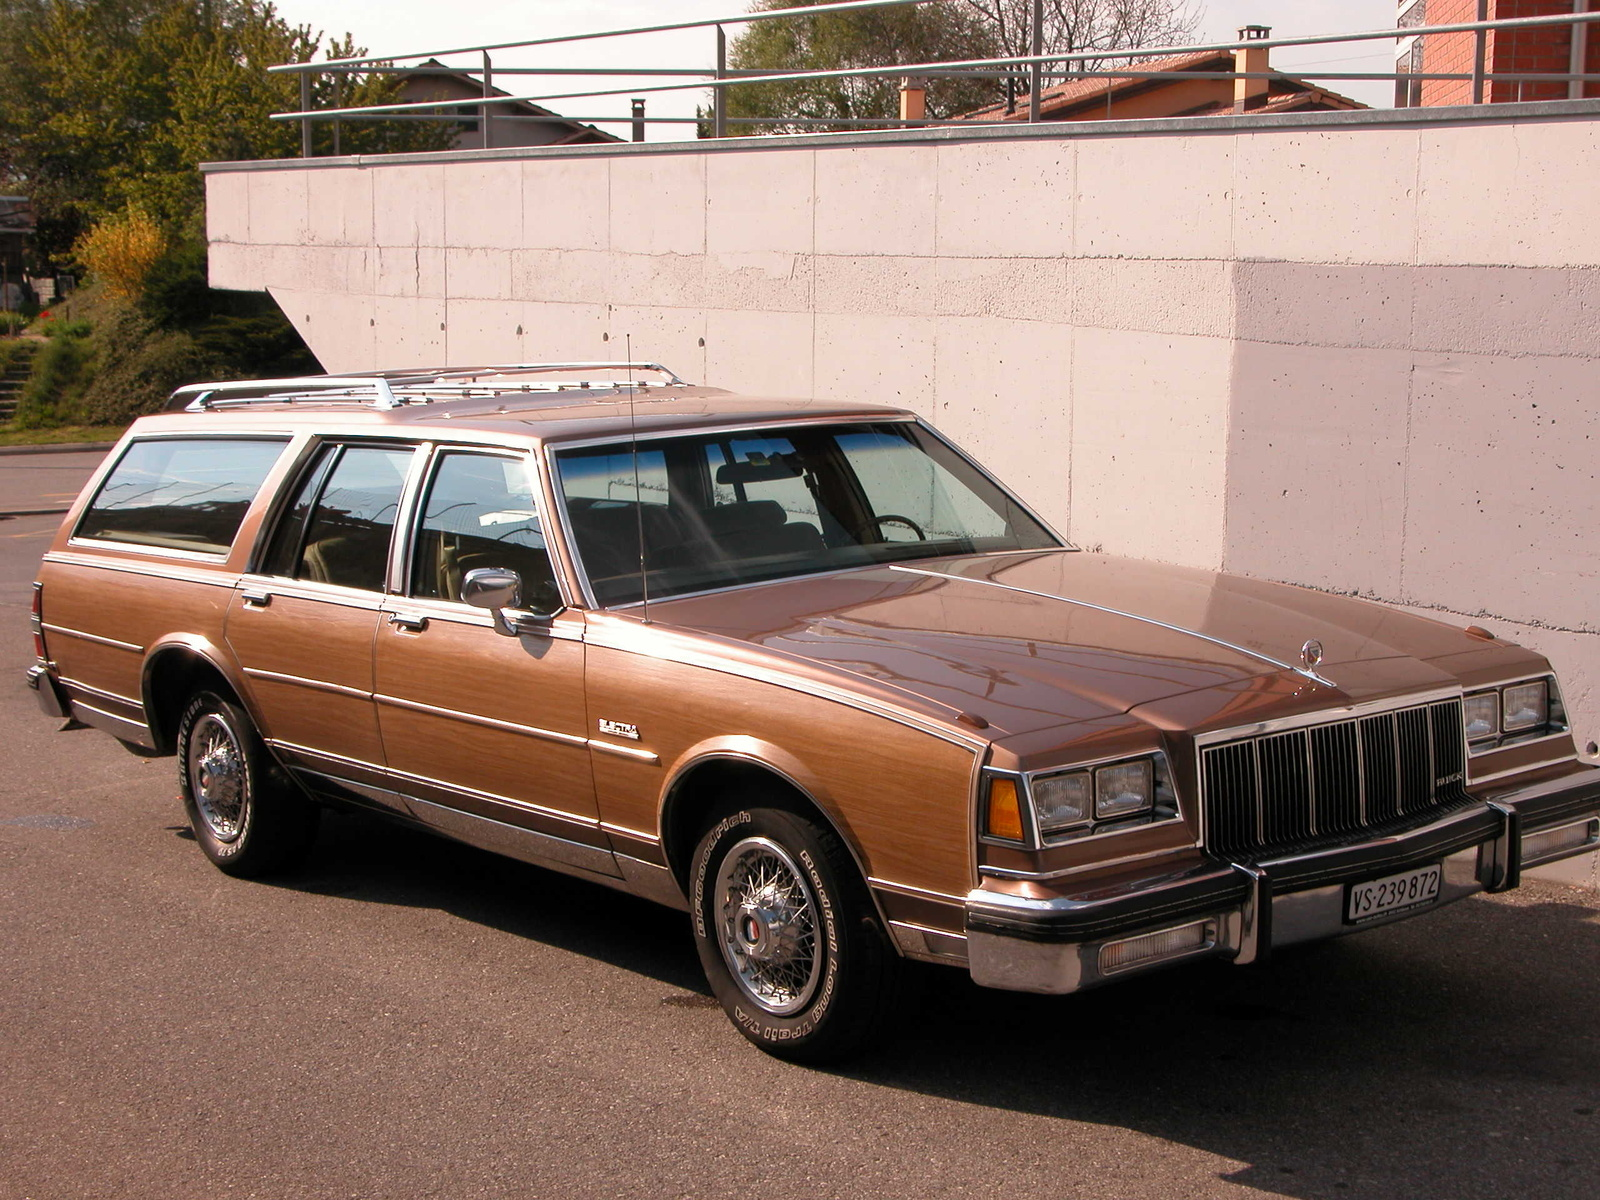 Buick Estate Wagon Pic X on 1989 Buick Lesabre Estate Wagon